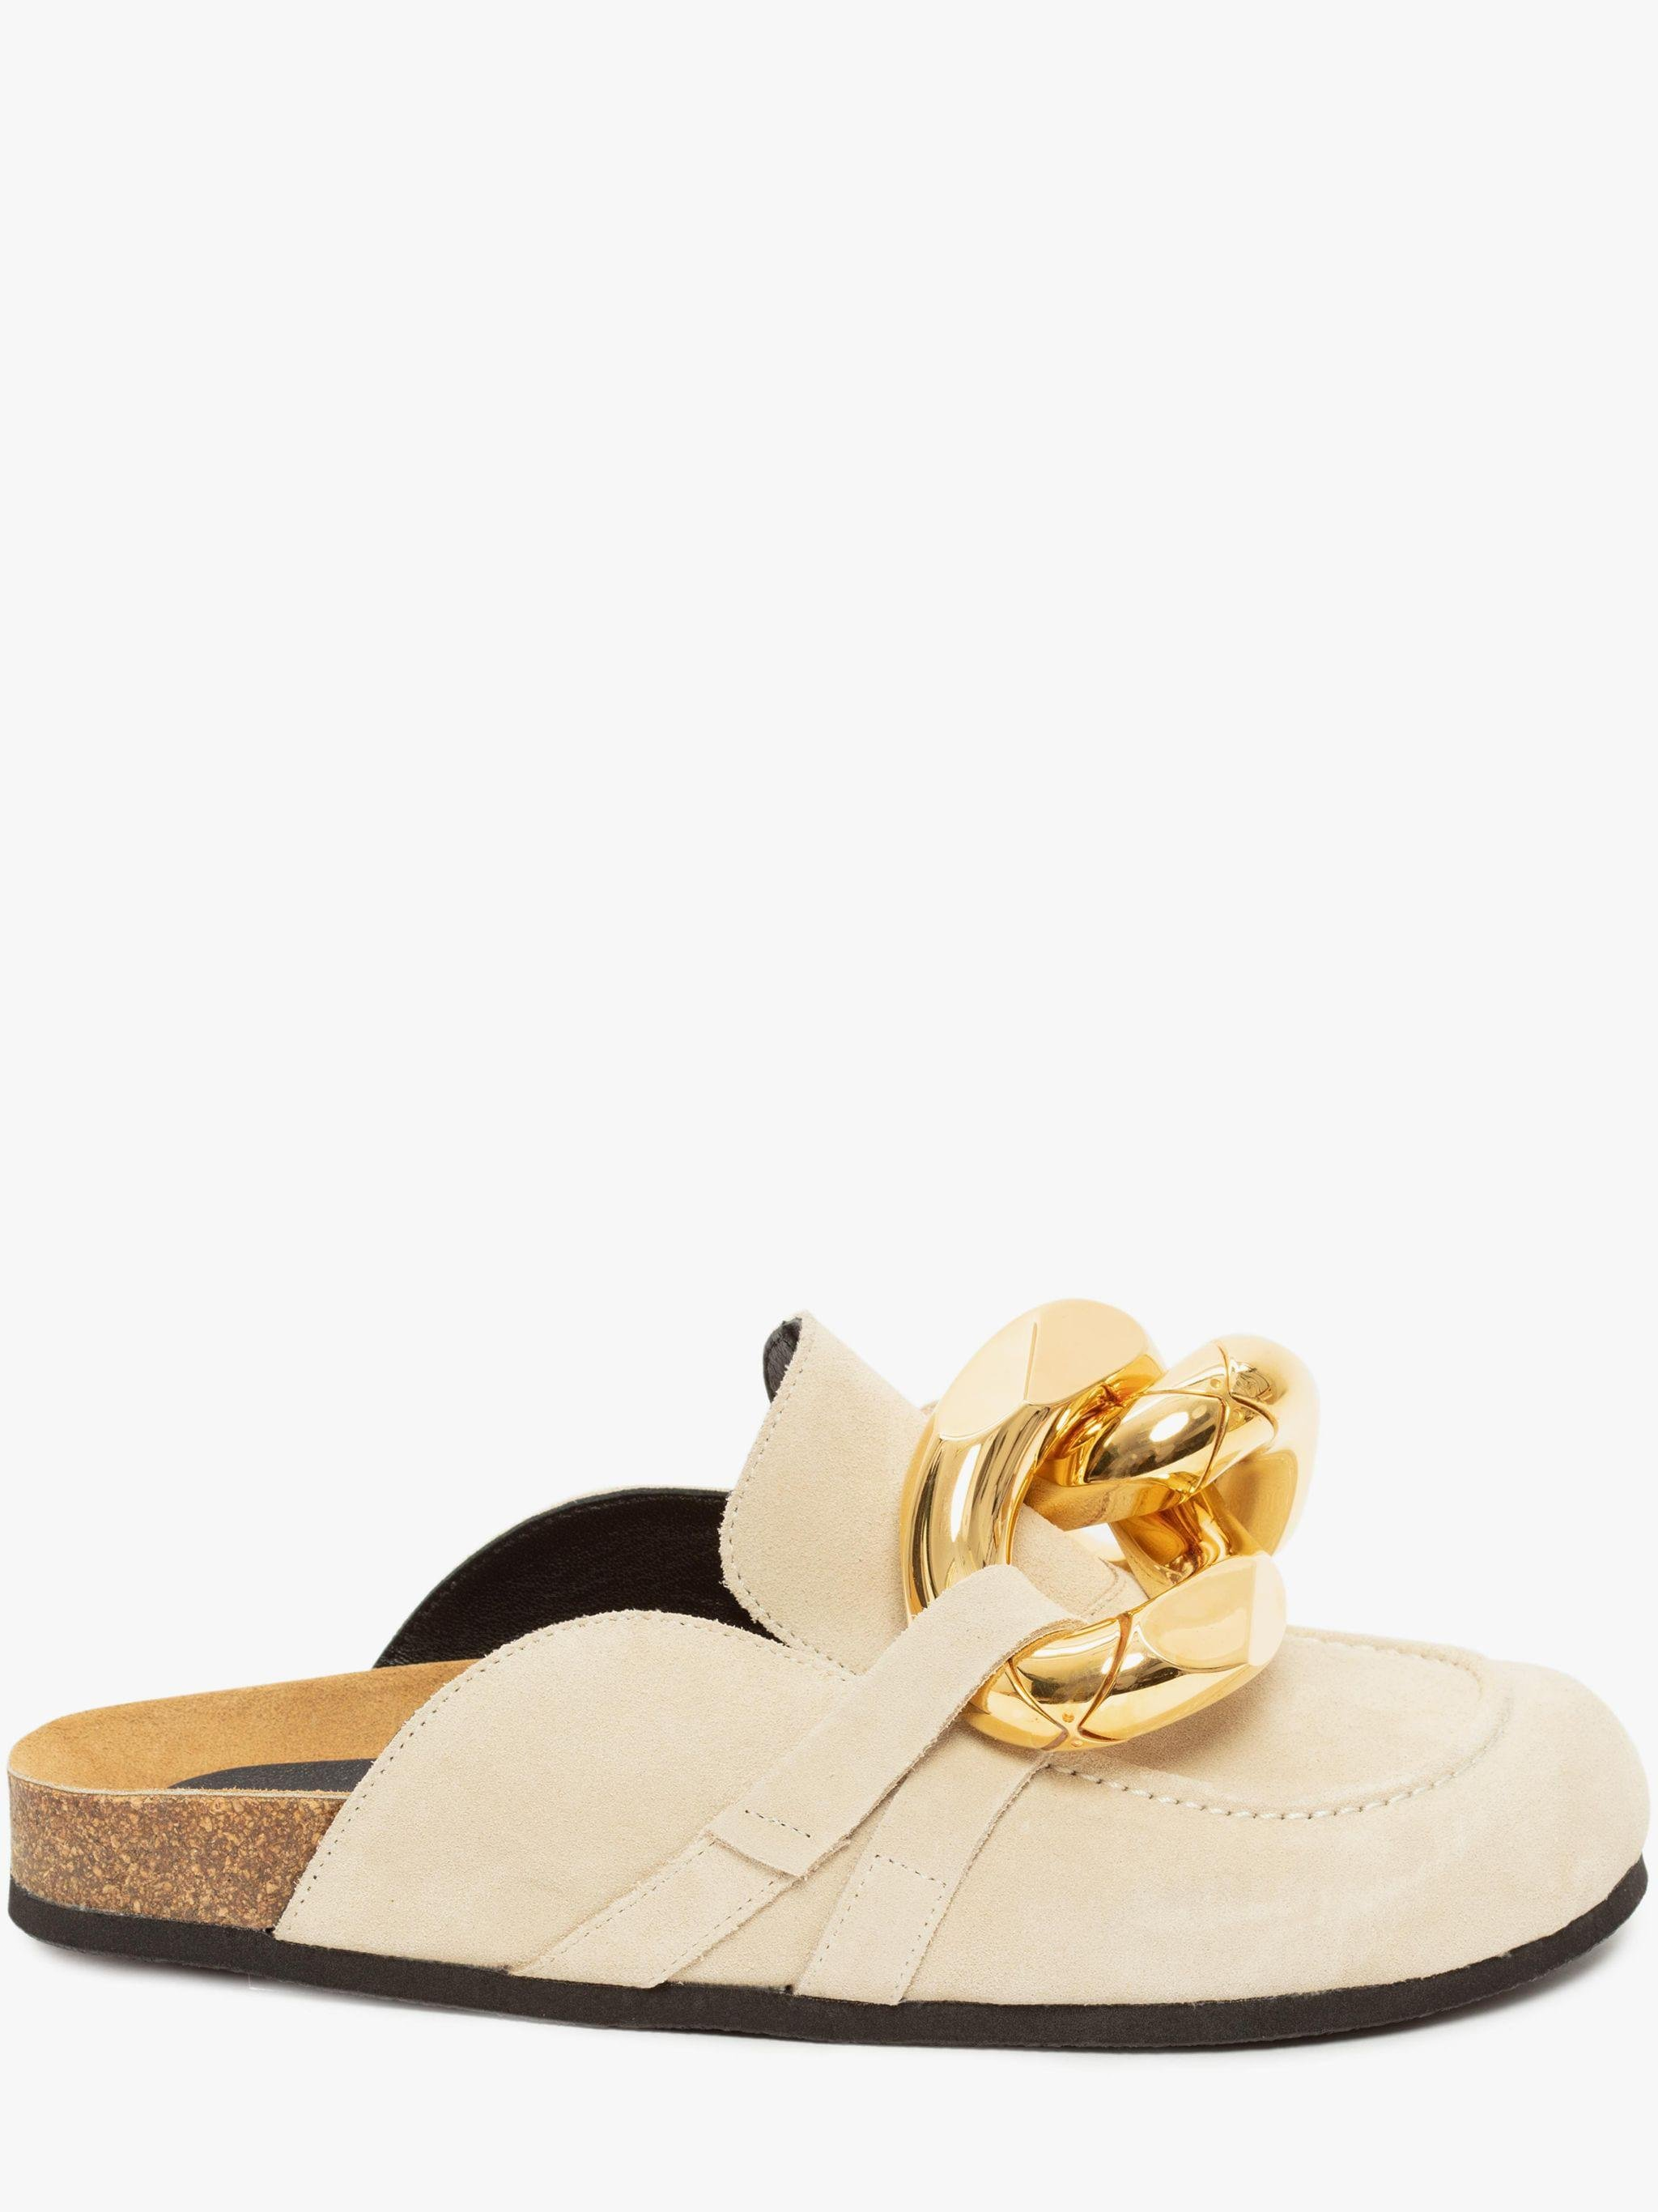 WOMEN'S SUEDE LOAFER MULES